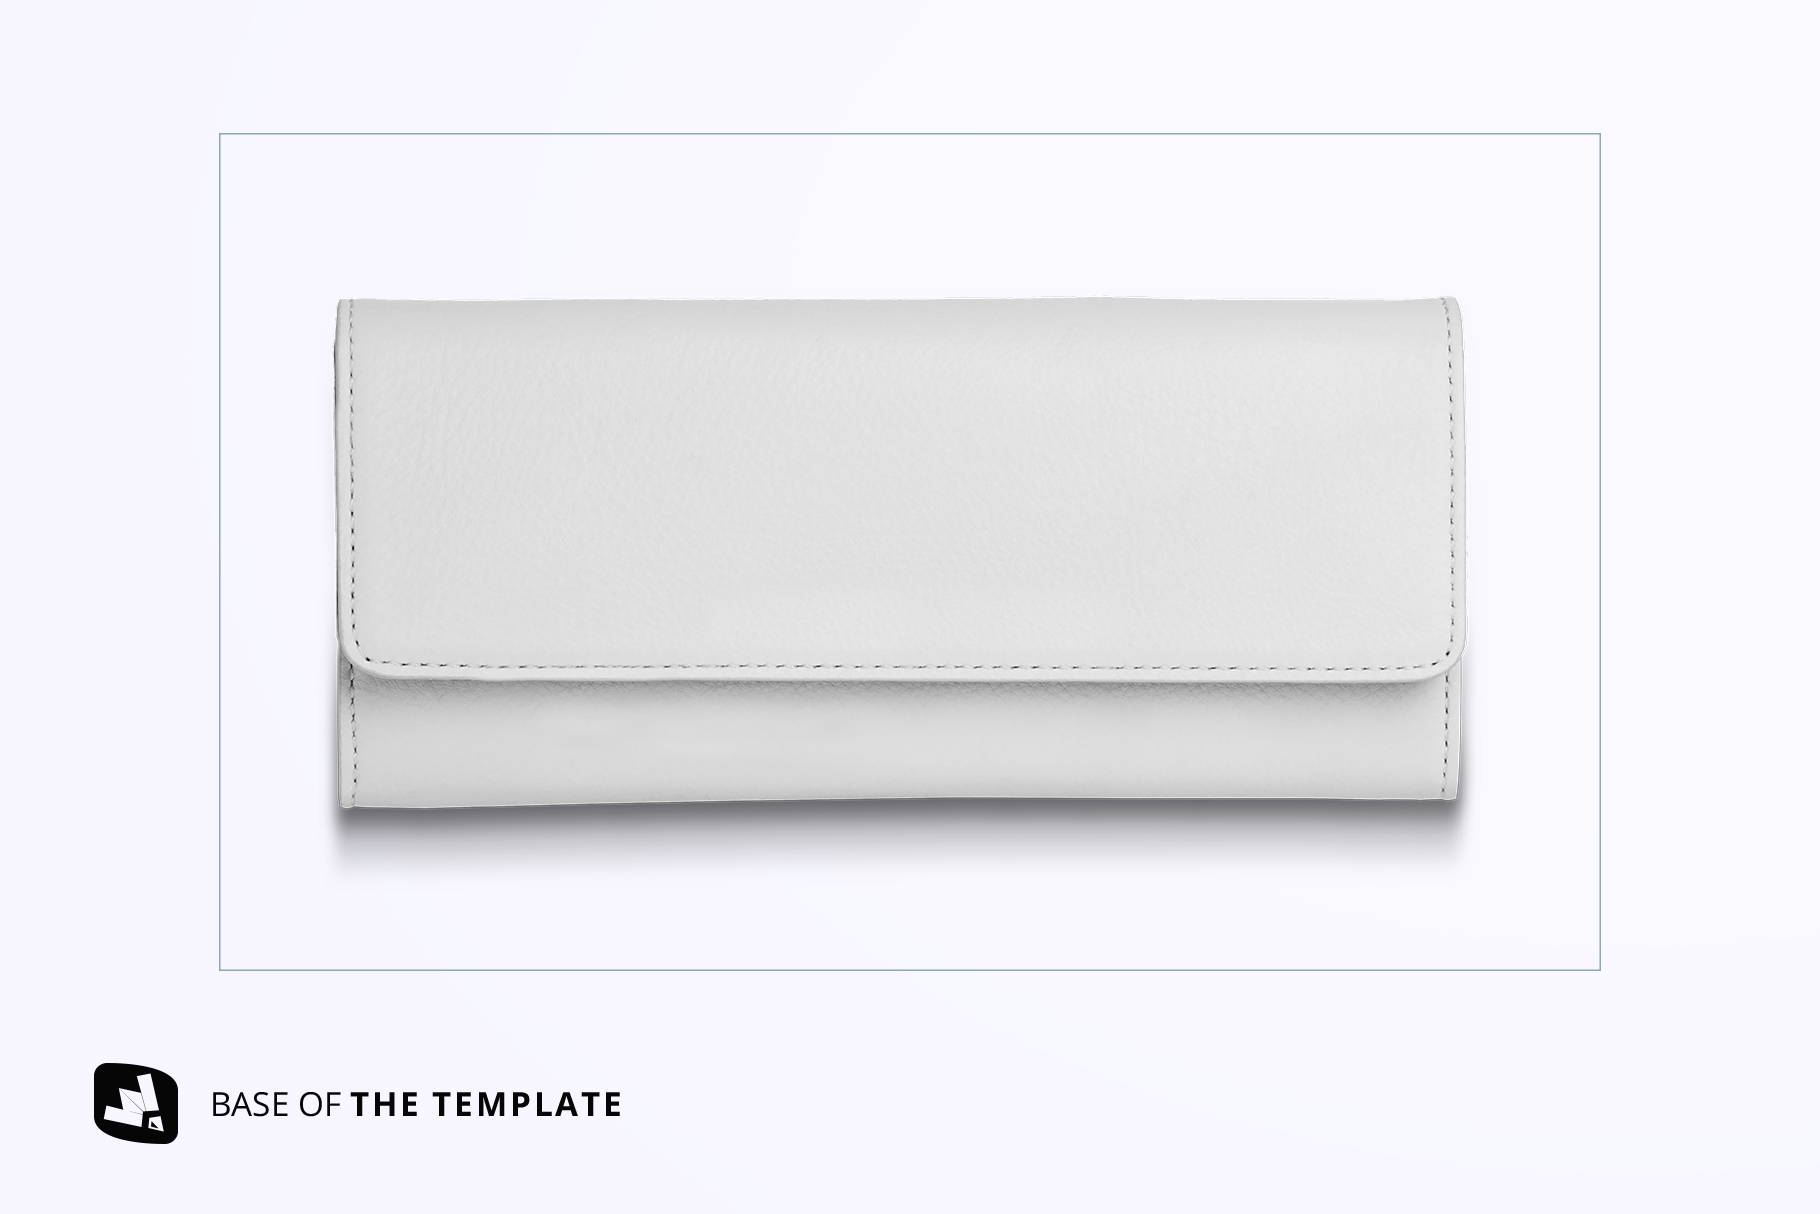 base image of the top view women's purse mockup